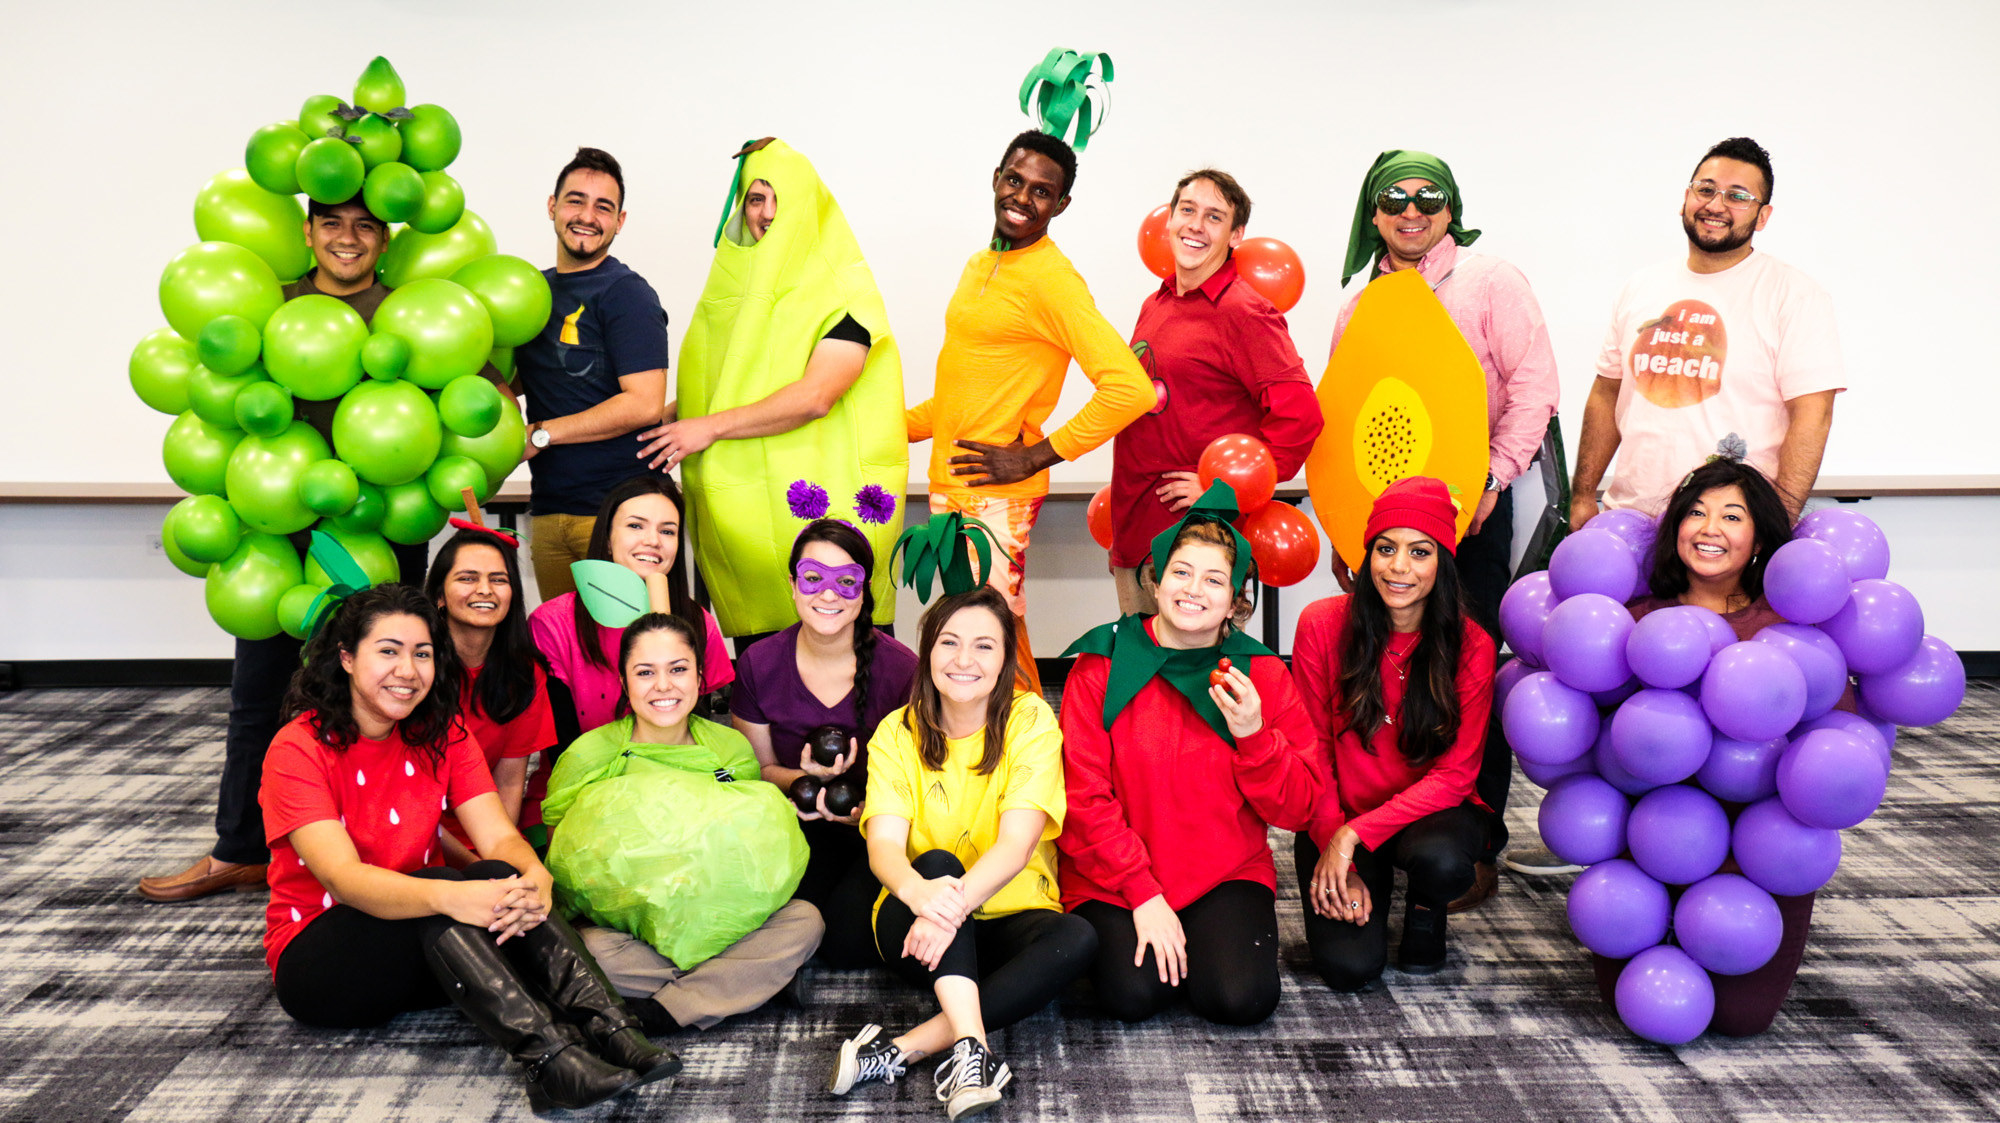 PacMan universe at the firm with people dressed as fruit